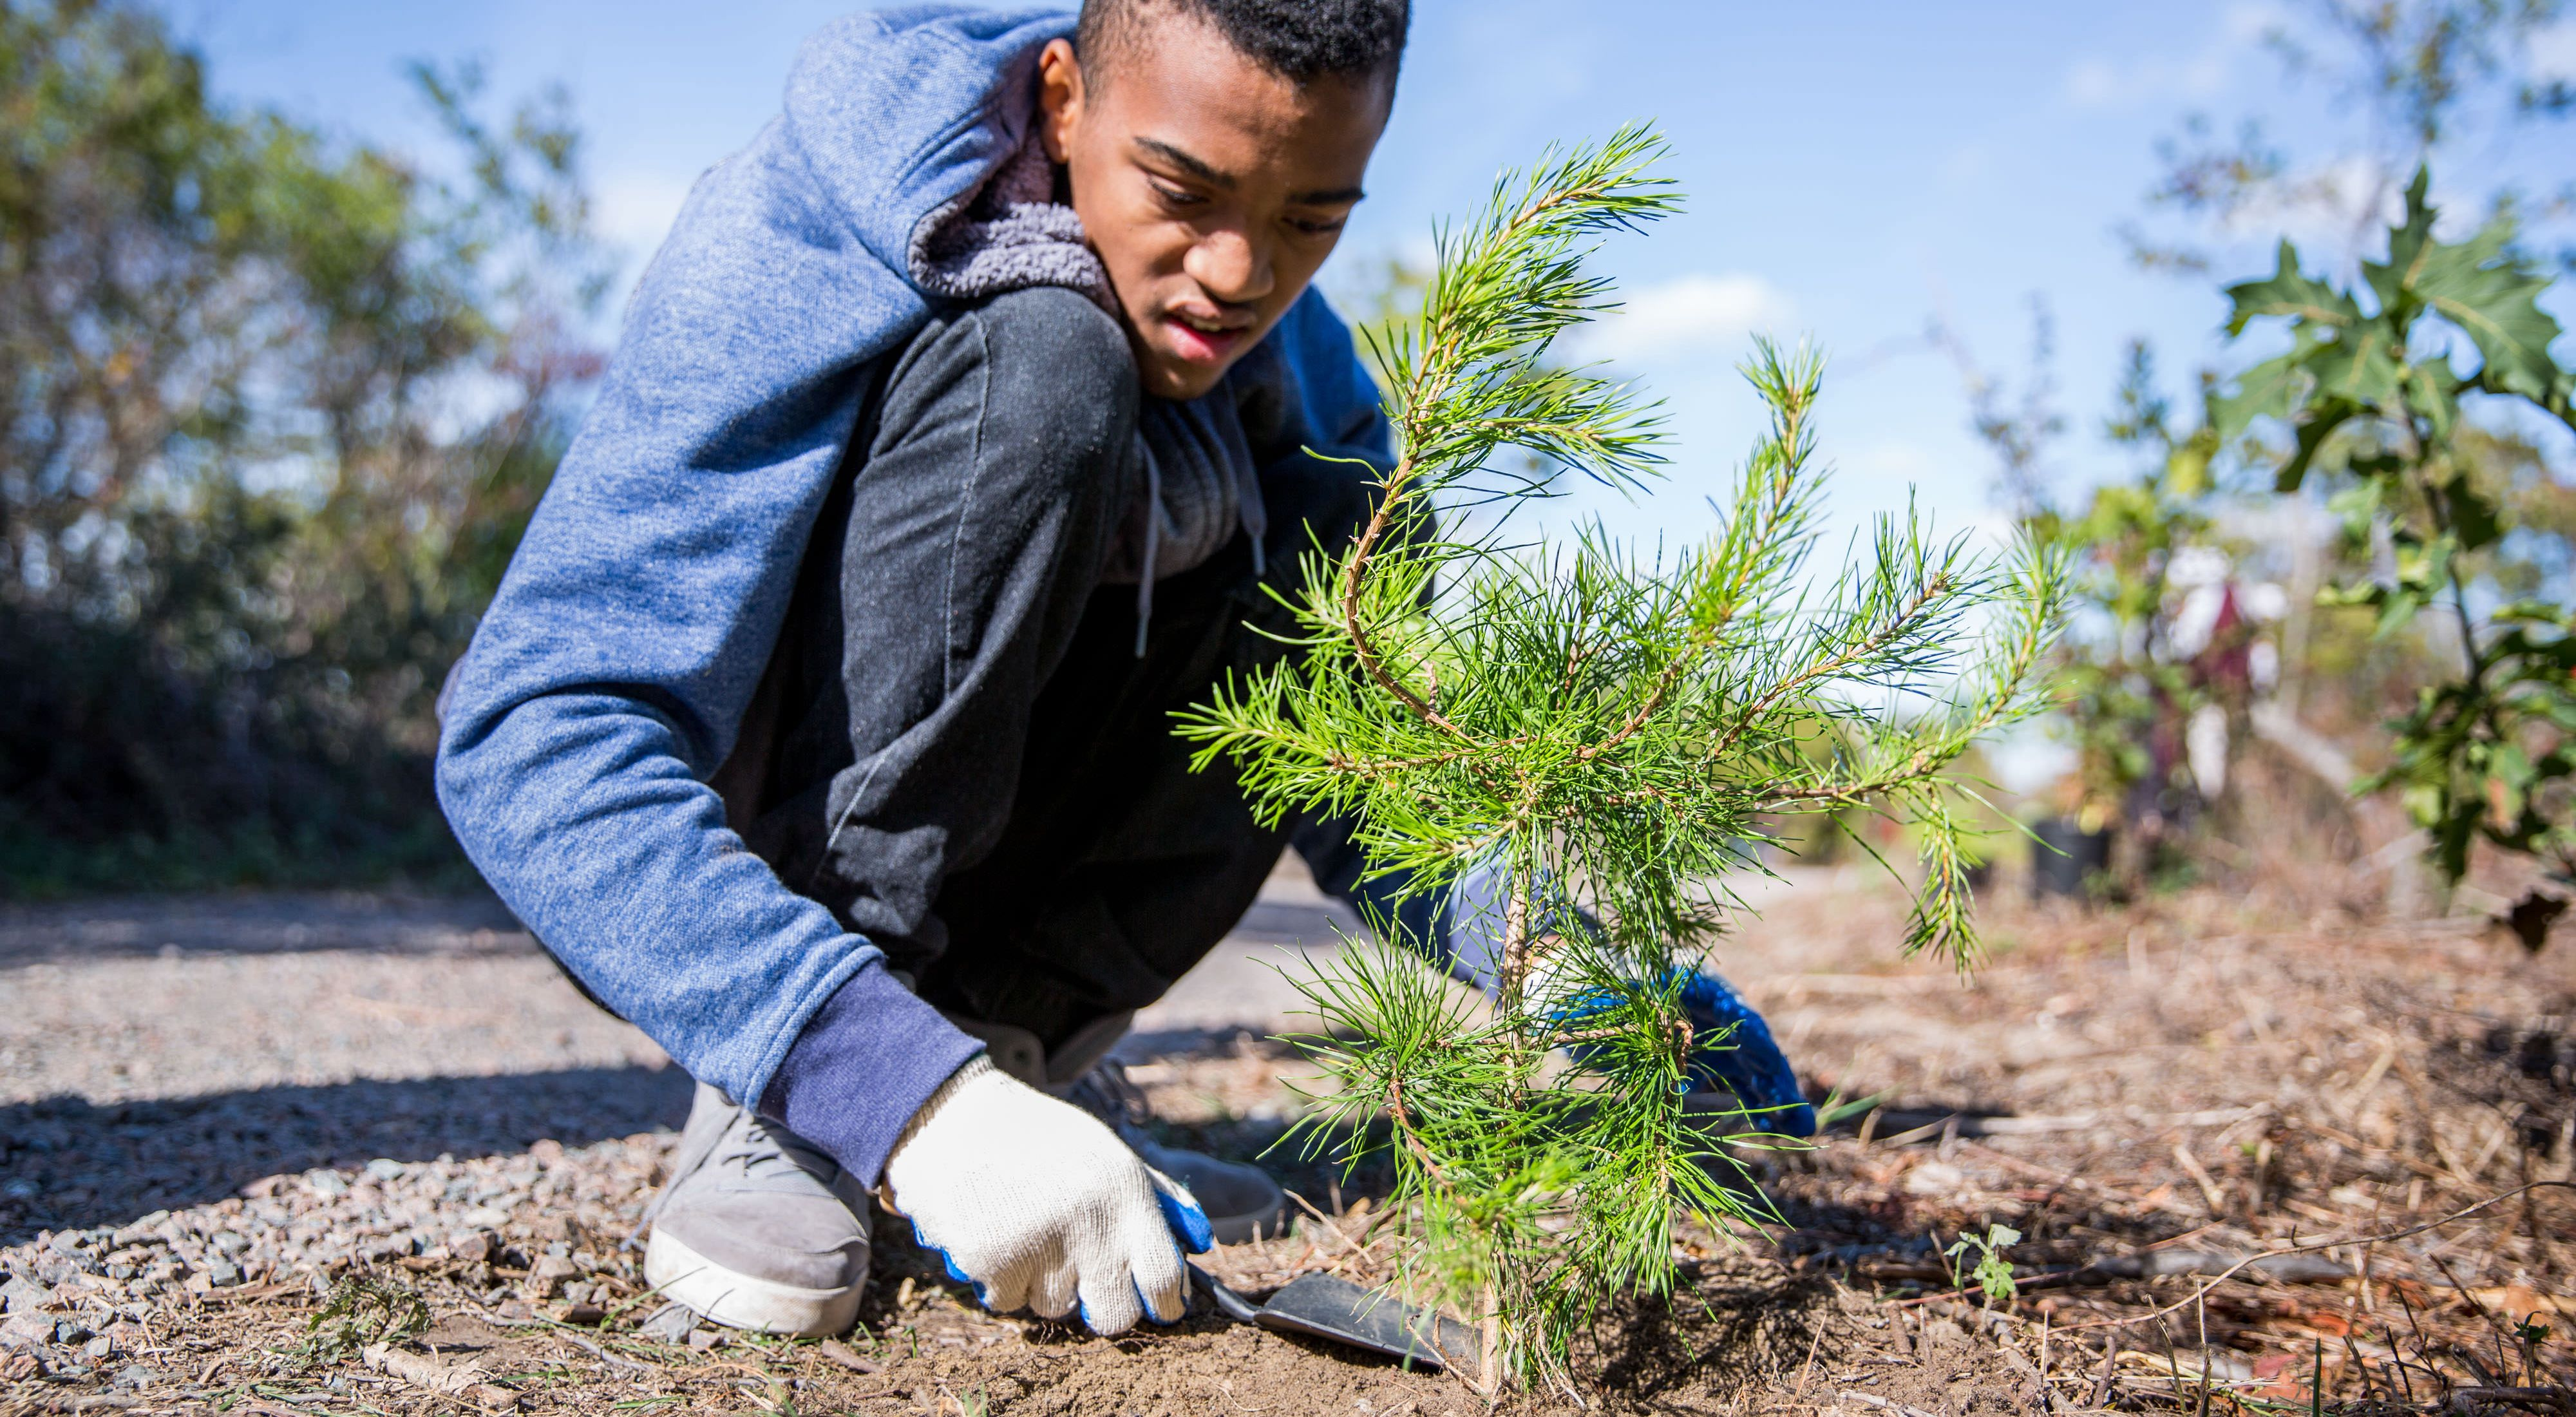 The Conservancy's Urban Conservation program in New York City hosted a large-scale tree-planting event at Jamaica Bay Wildlife Refuge.